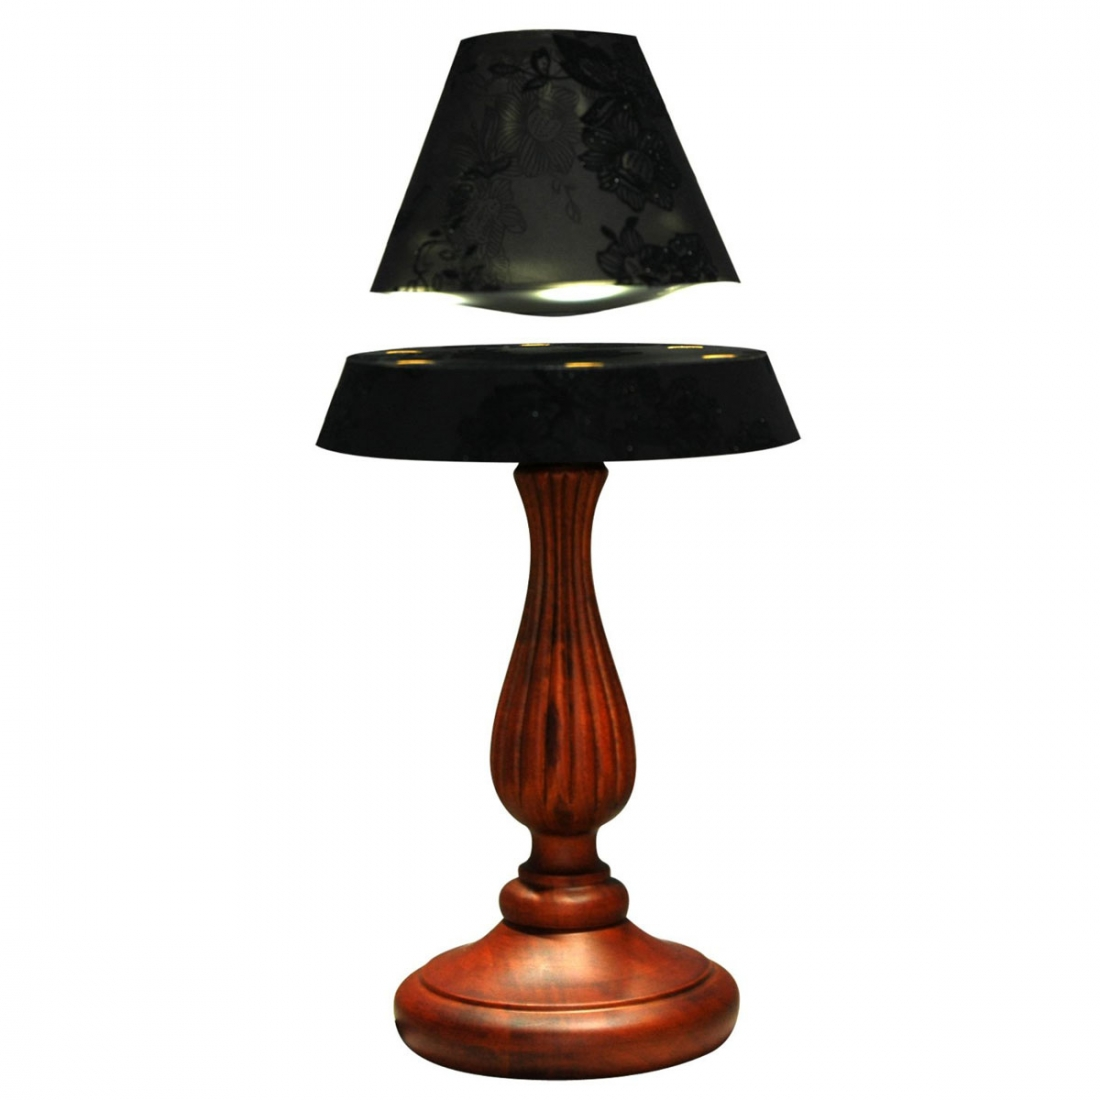 lampe de table design anti gravit classical althuria zendart design. Black Bedroom Furniture Sets. Home Design Ideas